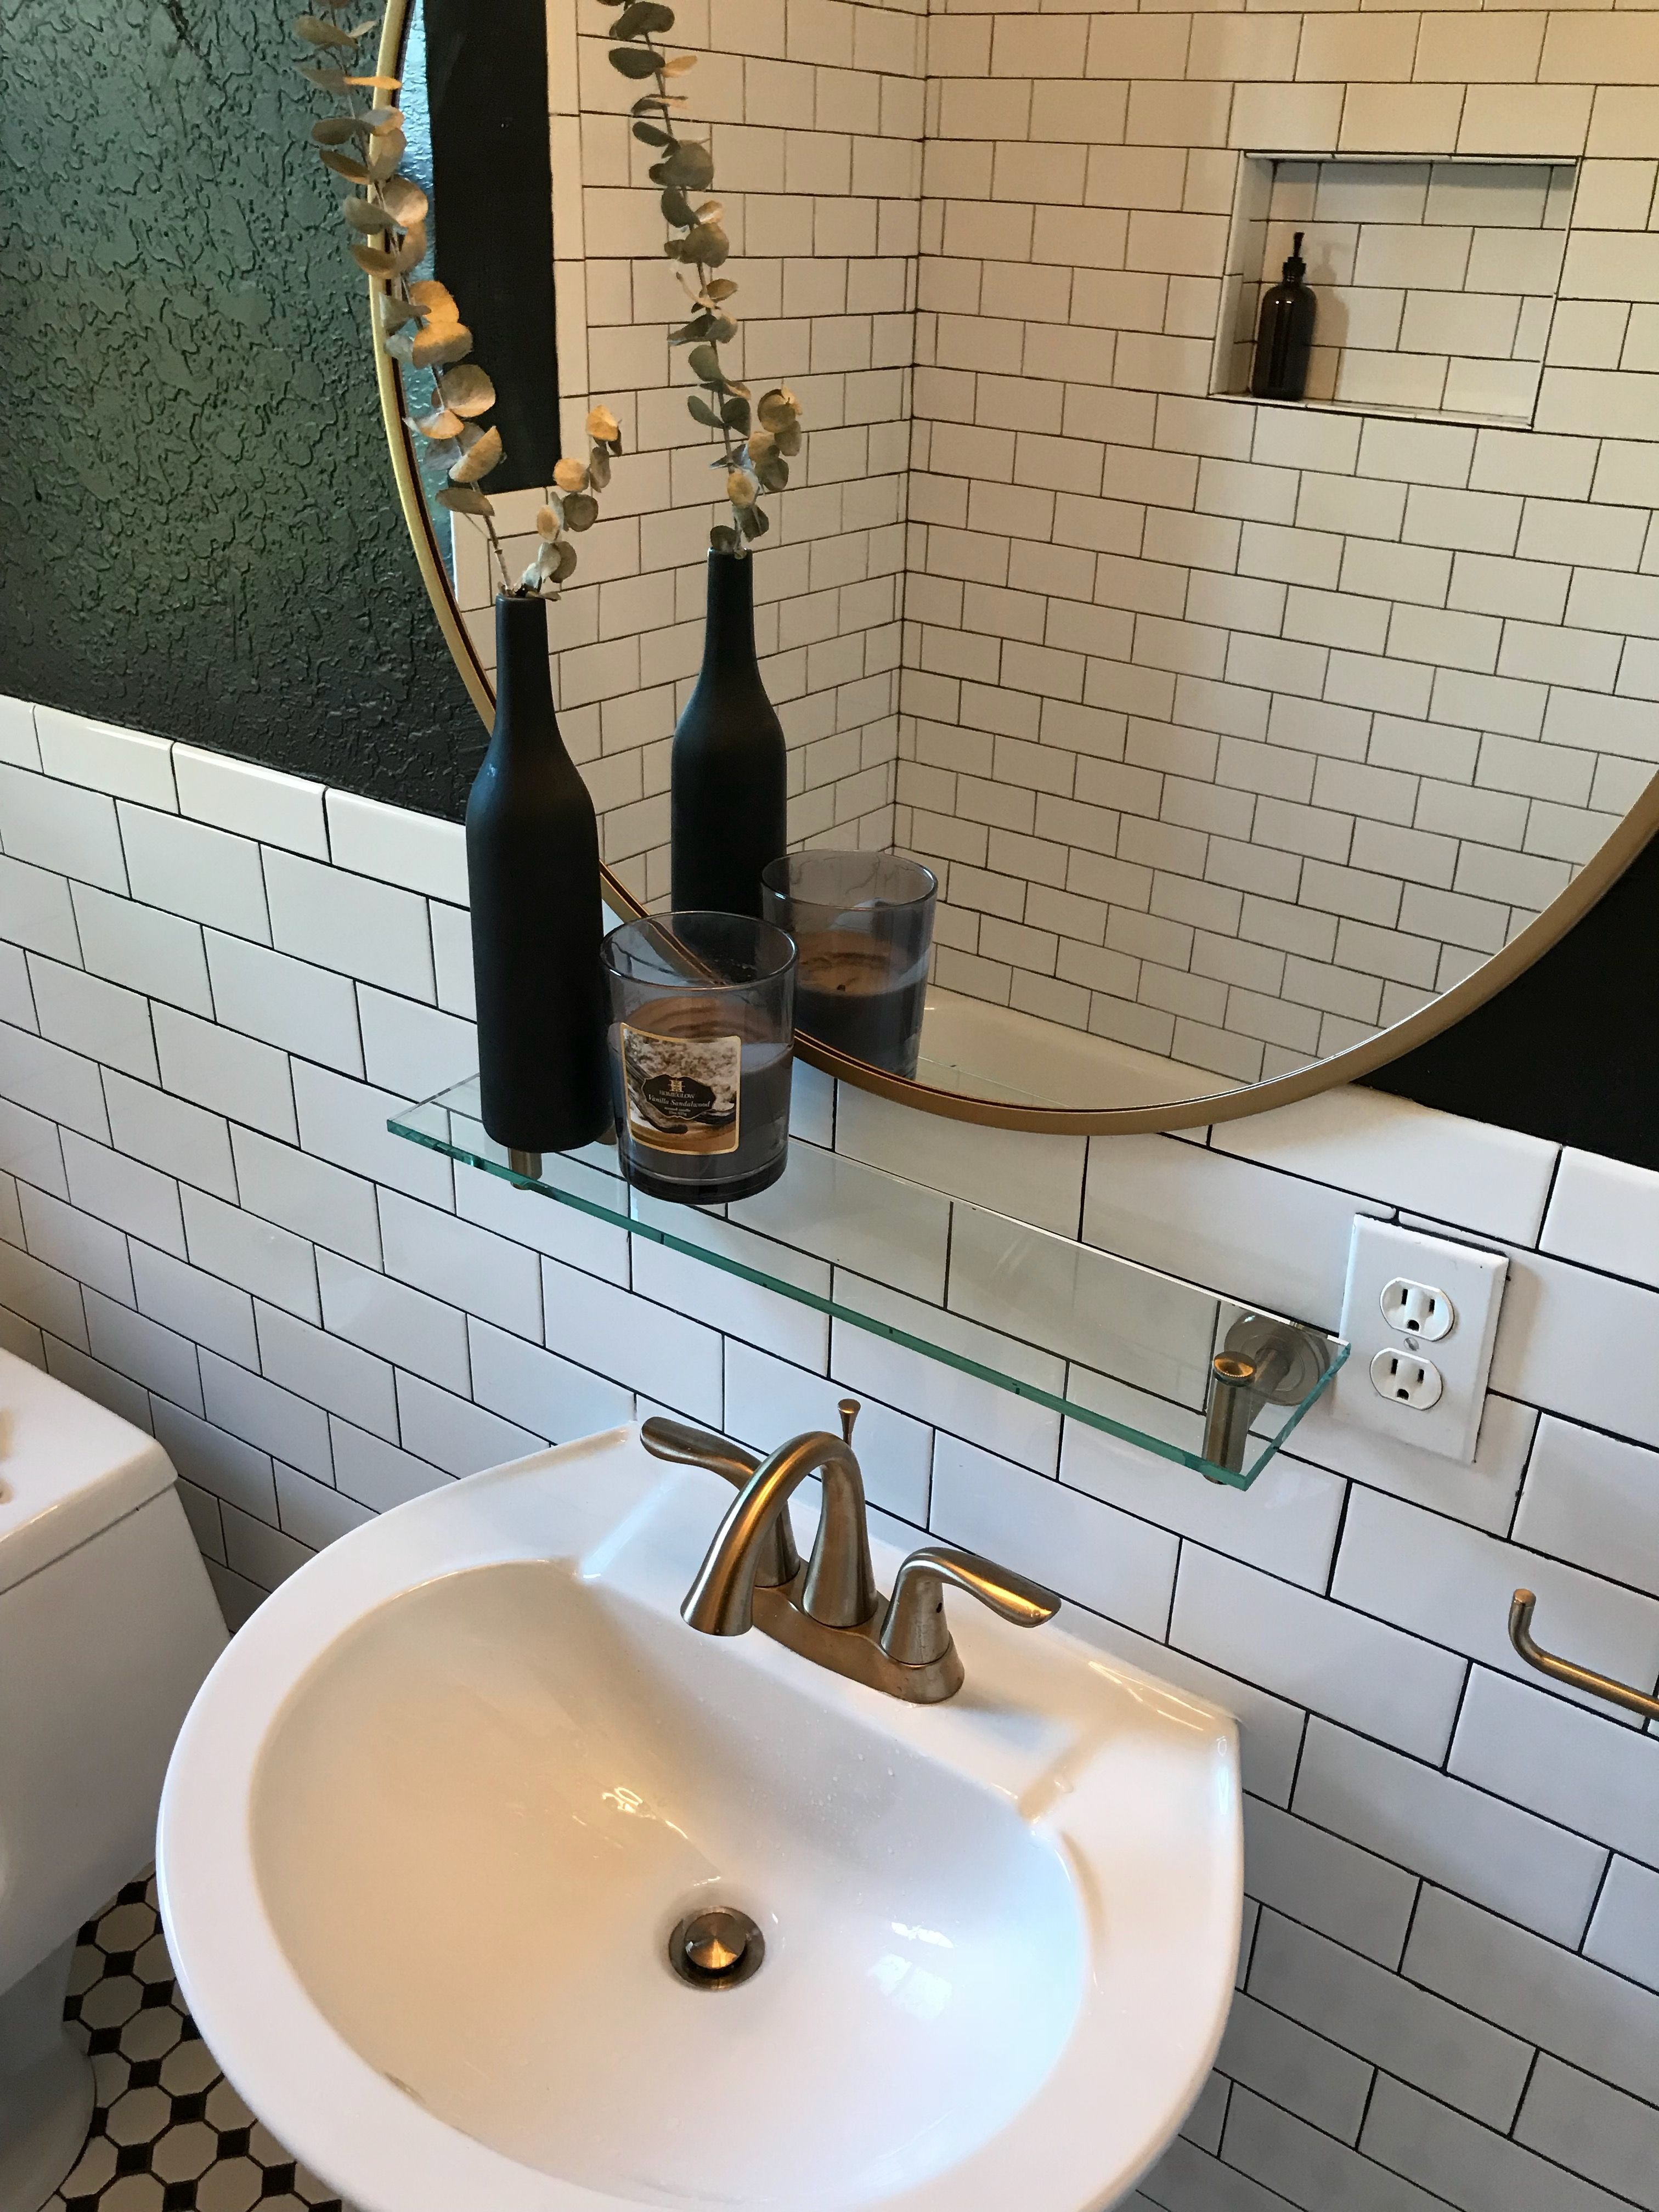 Classic new york vibes subway tiles with black grout black walls classic new york vibes subway tiles with black grout black walls gold accessories my small bathroom remodel design pinterest black grout dailygadgetfo Choice Image